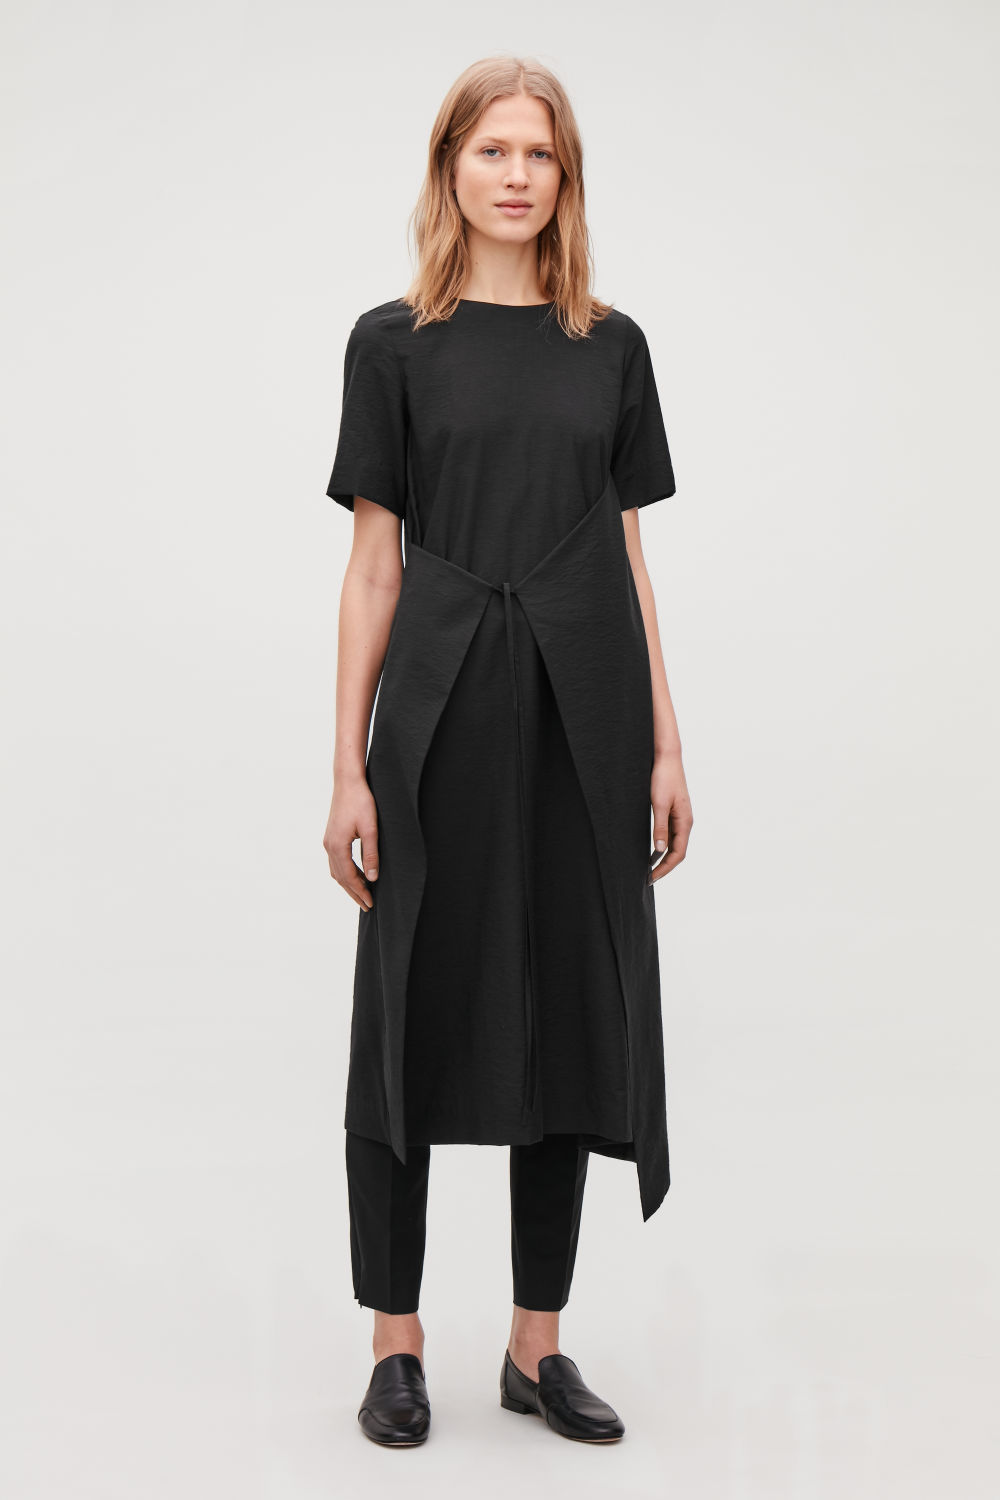 ASYMMETRIC TIE DRESS